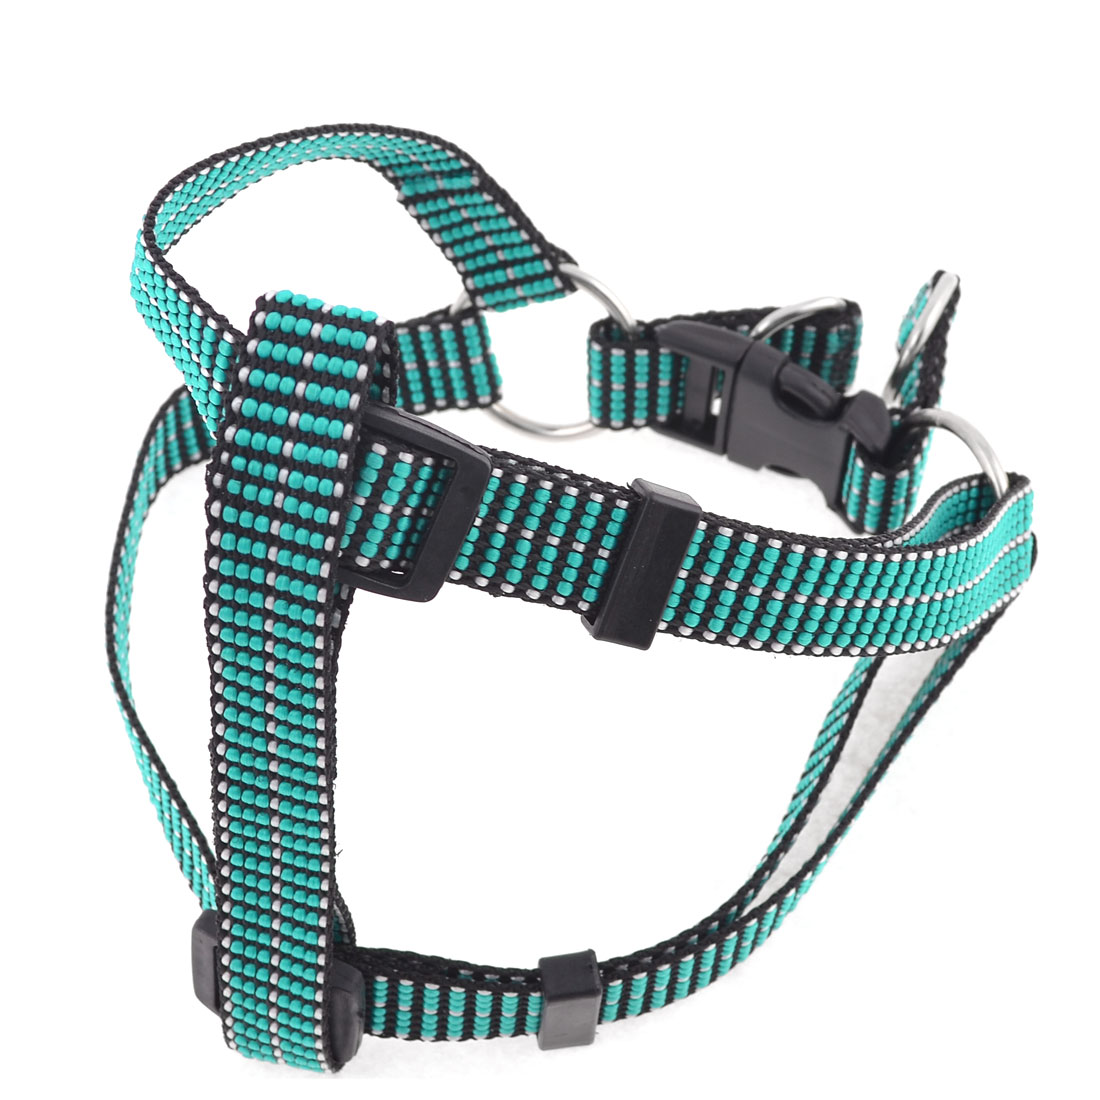 Seagreen Nylon Braided Adjustable Pet Dog Chest Strap Collar Harness Size L